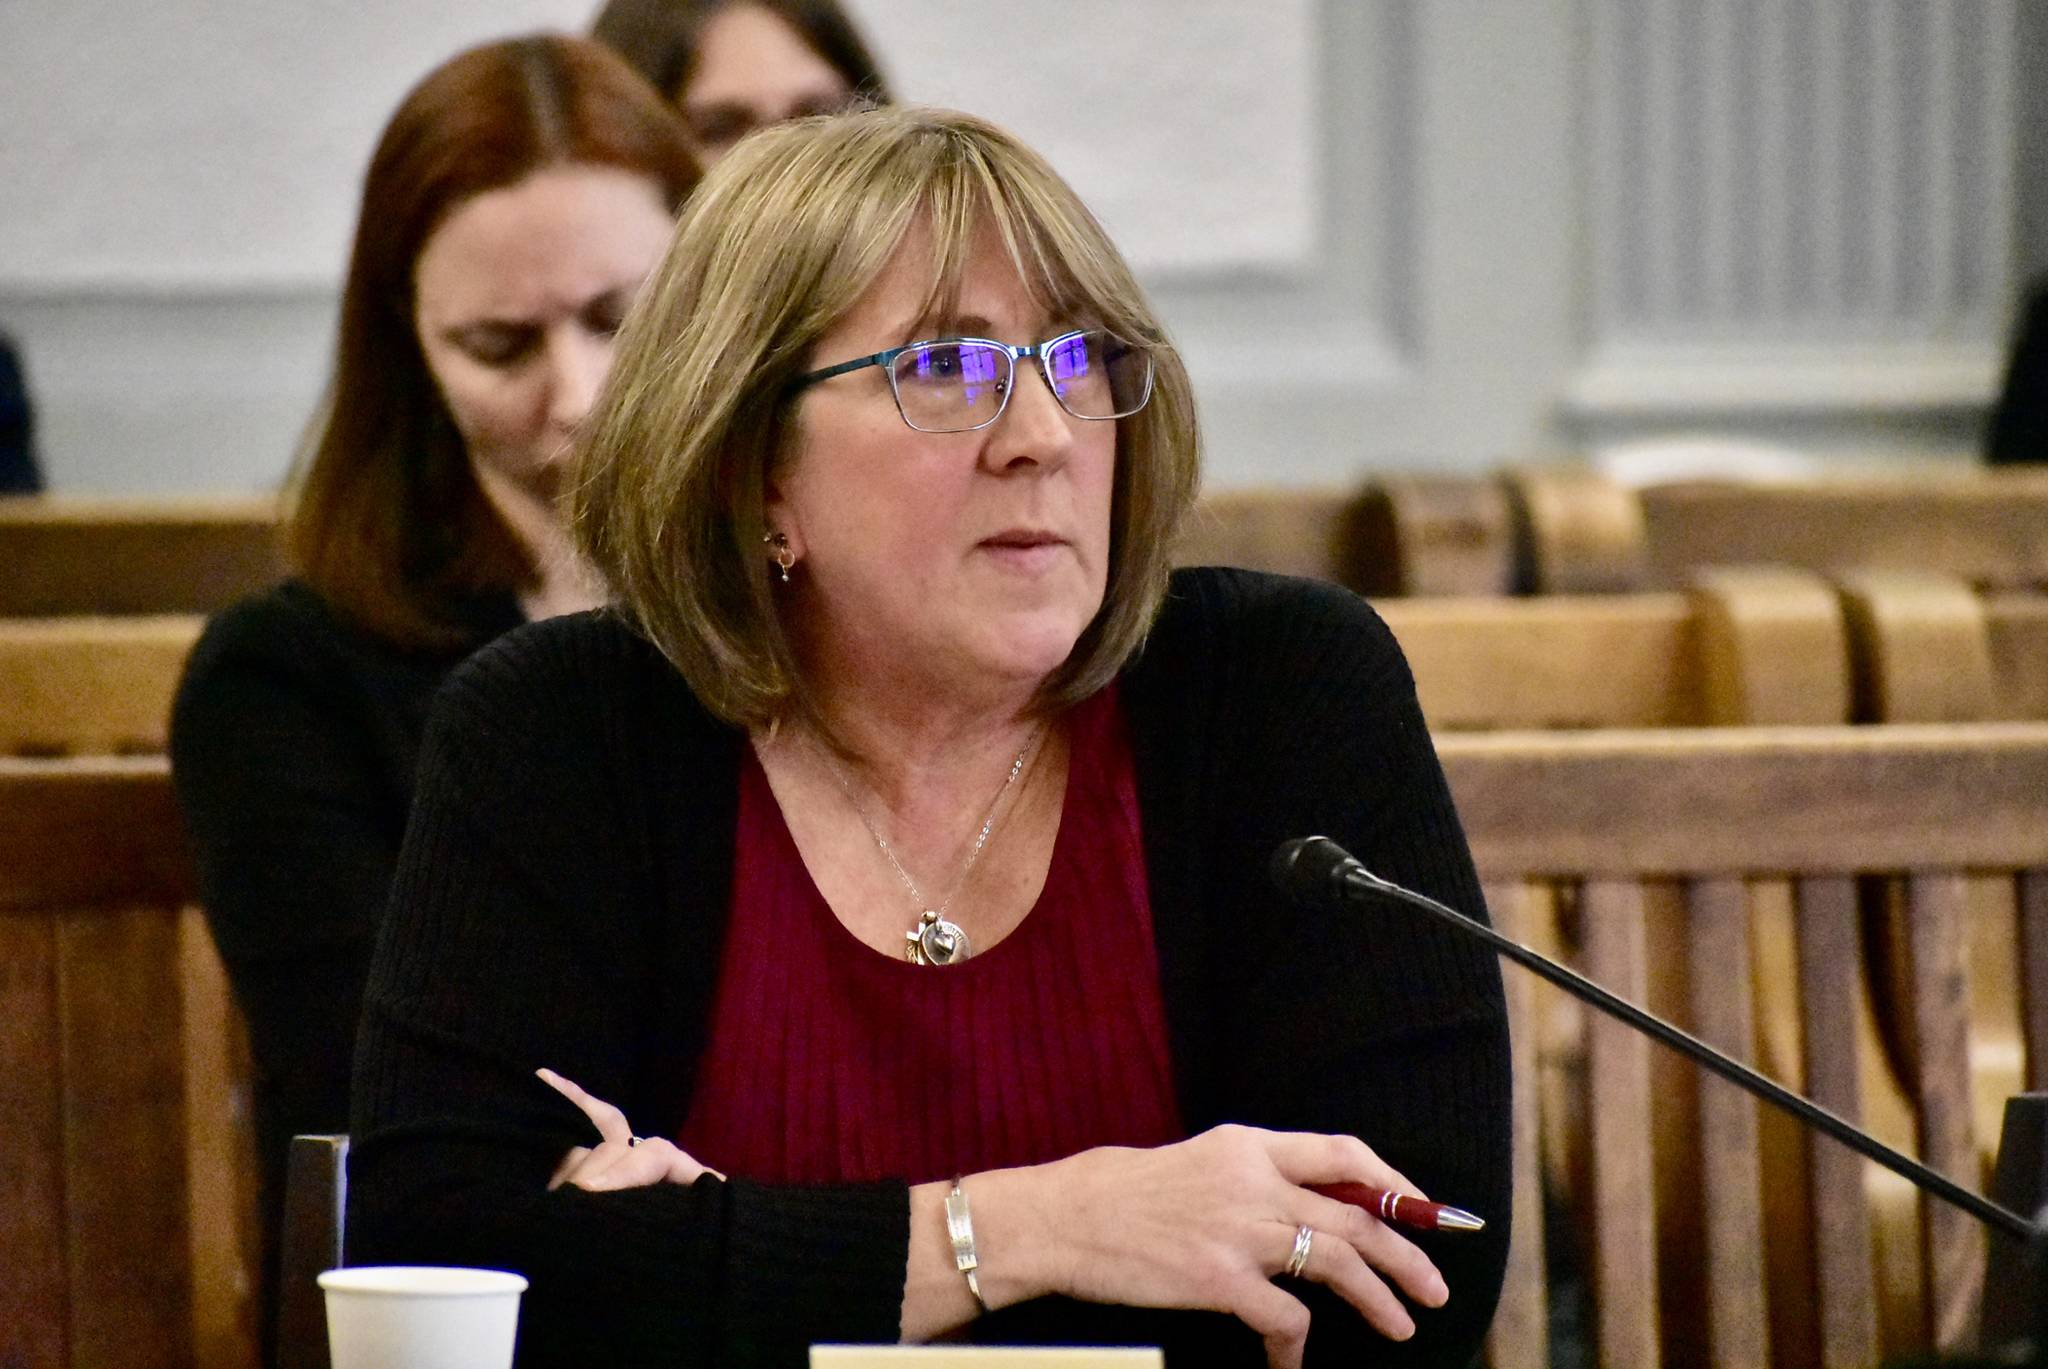 Gail Fenumiai, director of elections for the Alaska Division of Elections gives testimony to the Legislative Council committee on Tuesday, March 10, 2020. (Peter Segall | Juneau Empire)